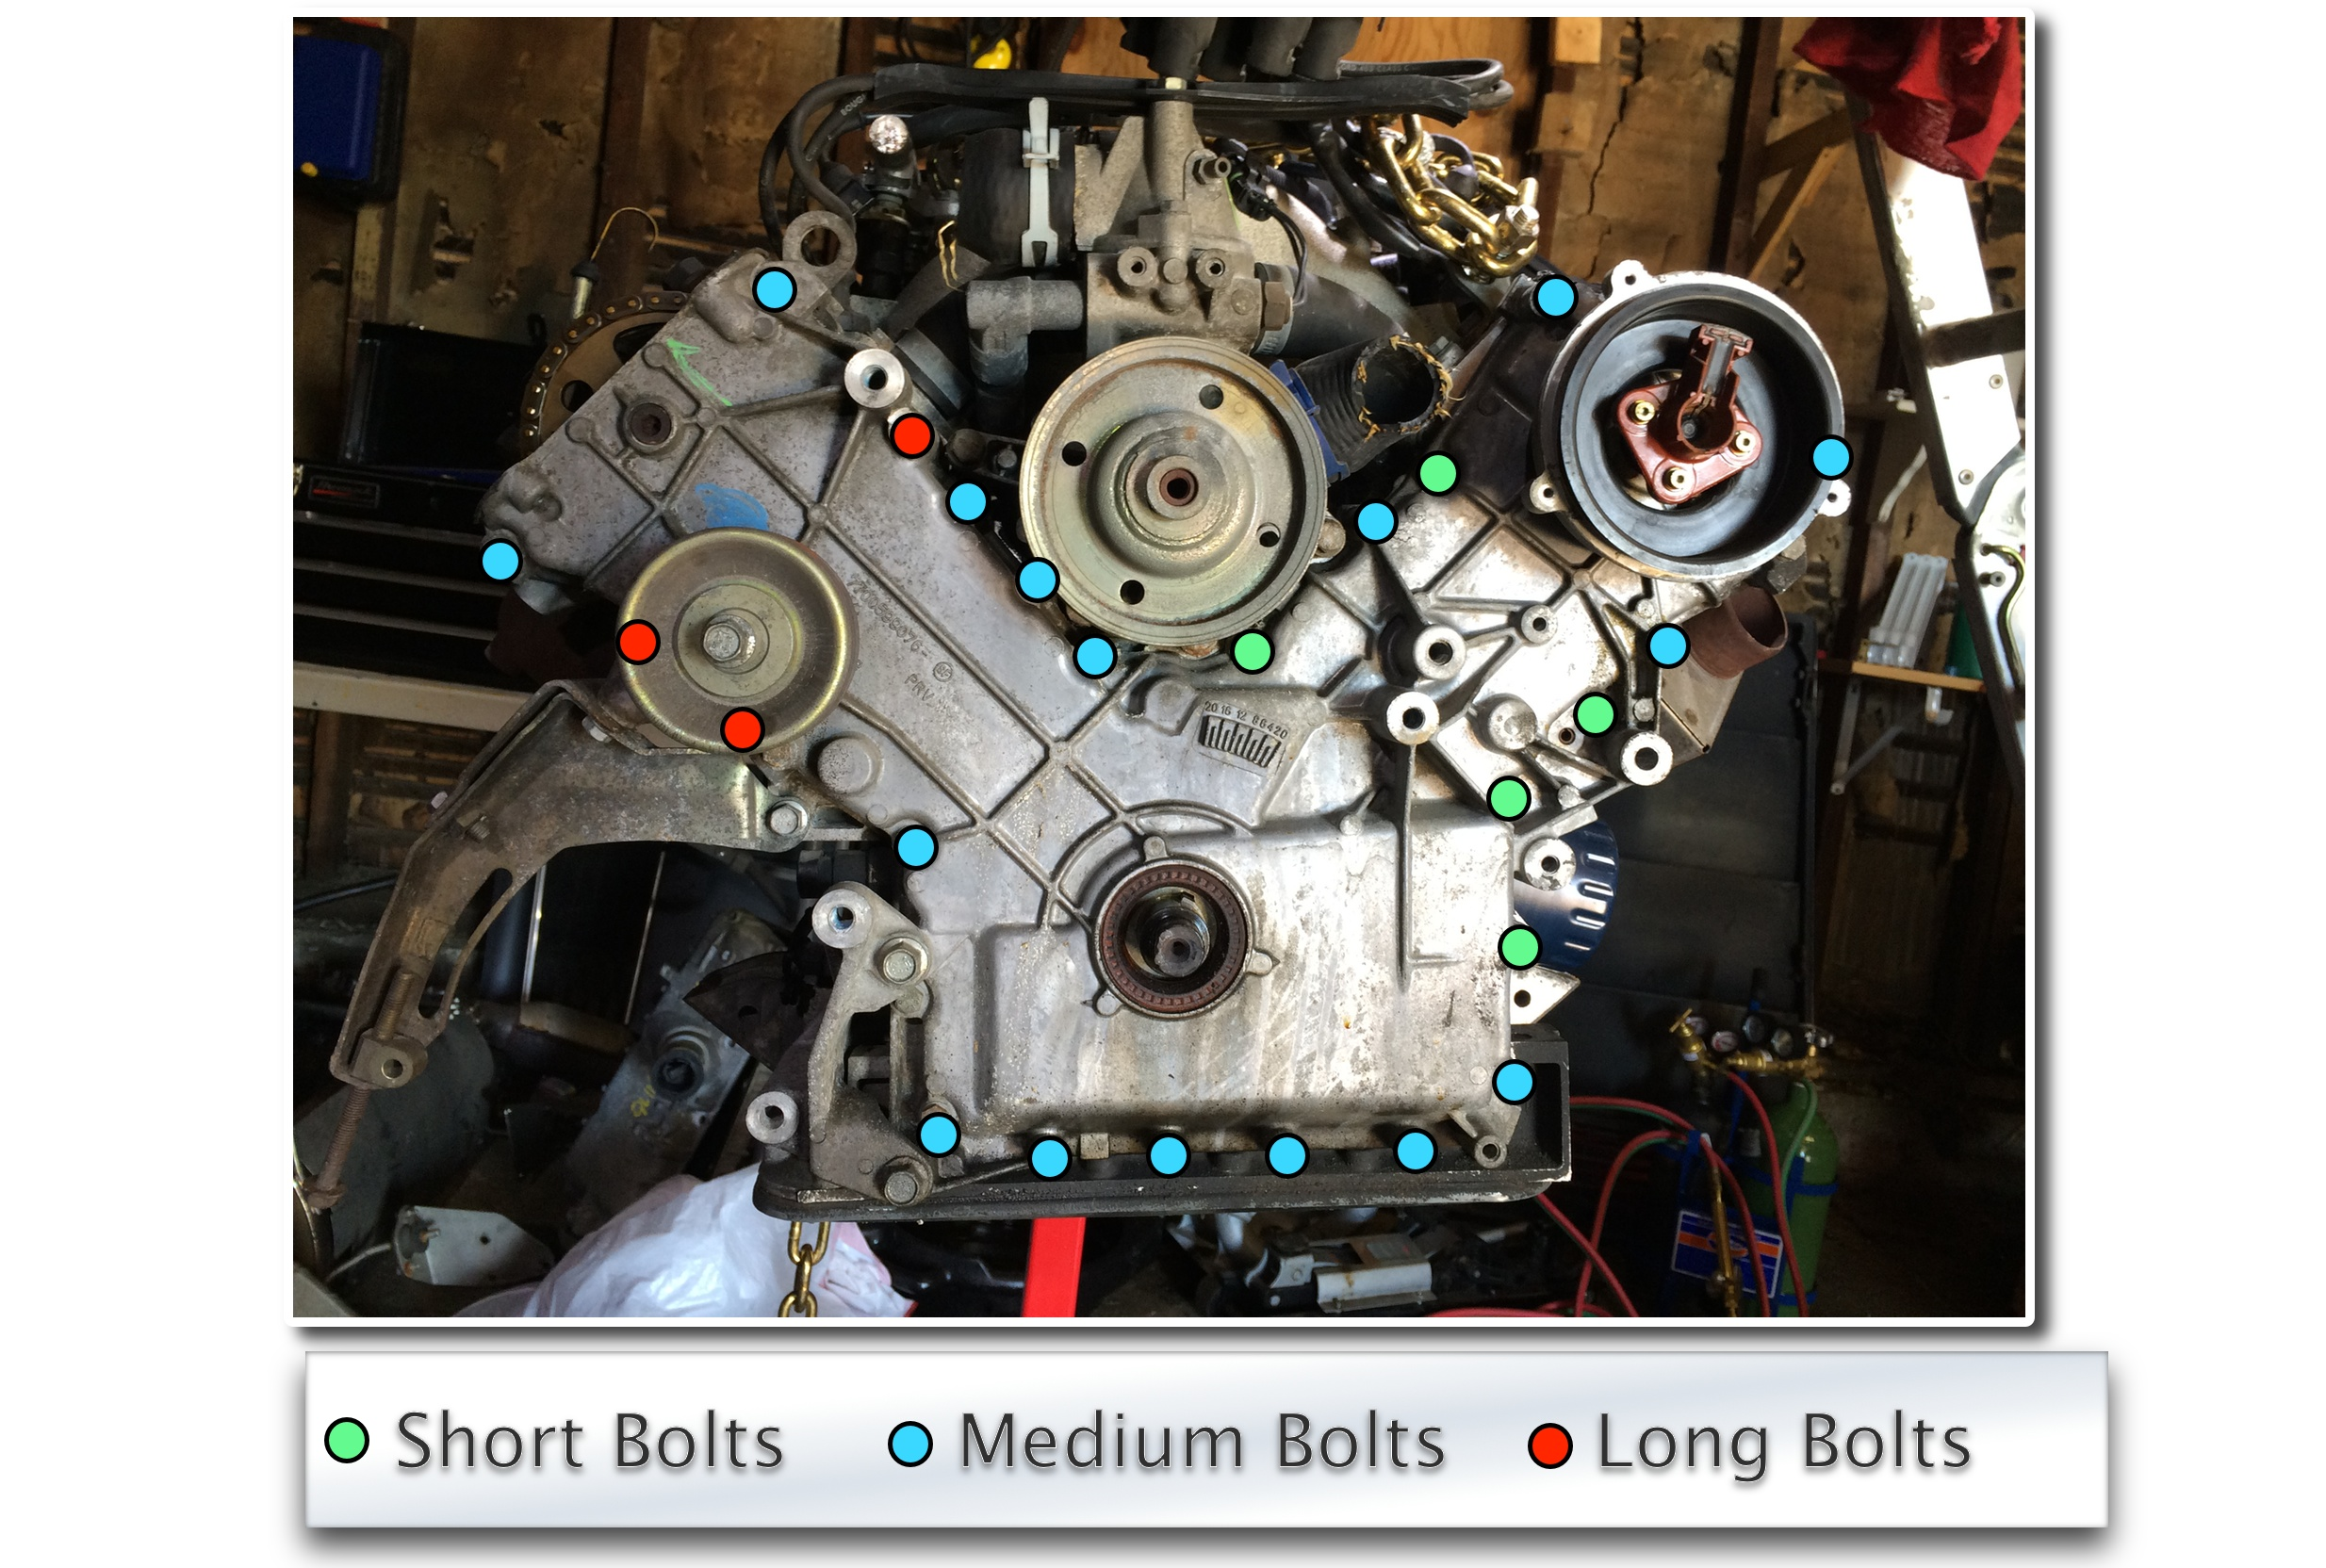 The timing cover is held on with 25 bolts (13mm socket) with a mix of bolt lengths.